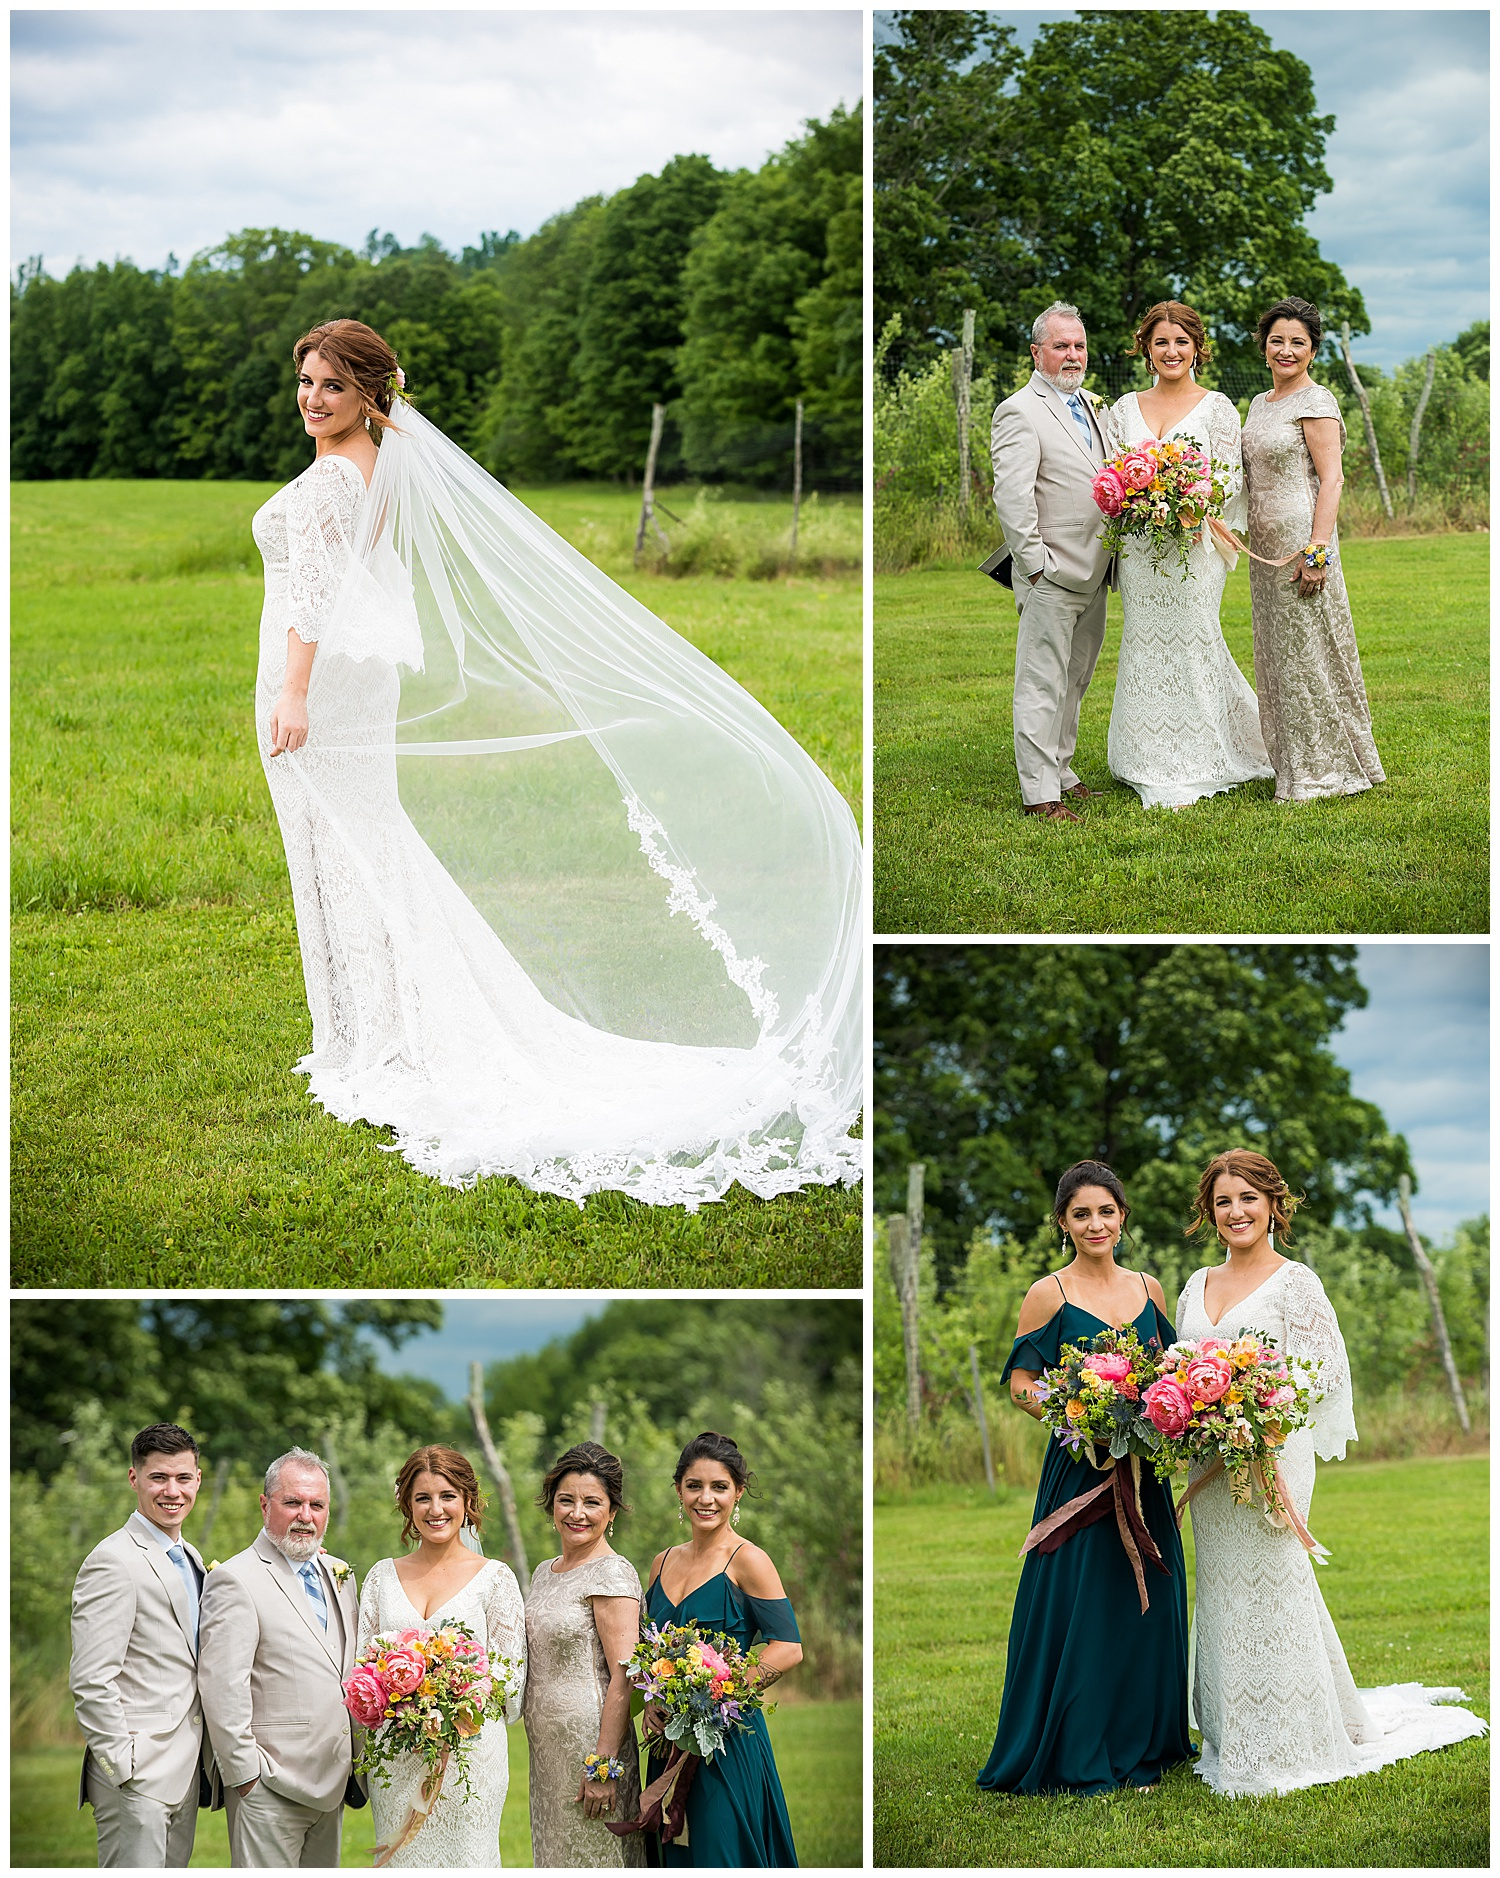 Valley View Farm Wedding - Family Photos